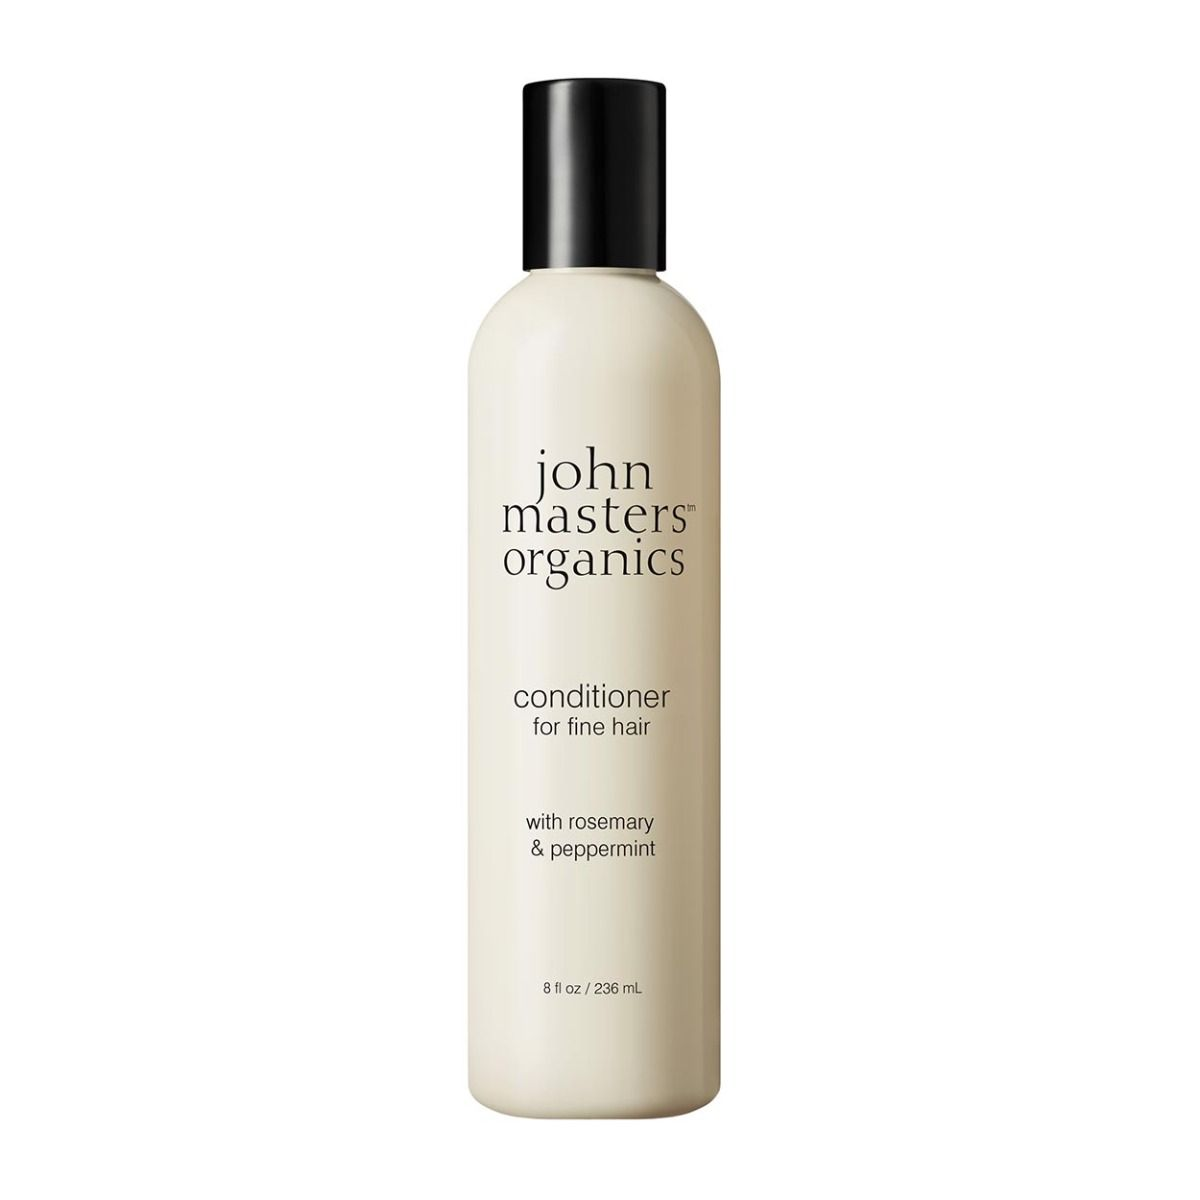 John Masters Conditioner For Fine Hair With Rosemary & Peppermint 8Oz.